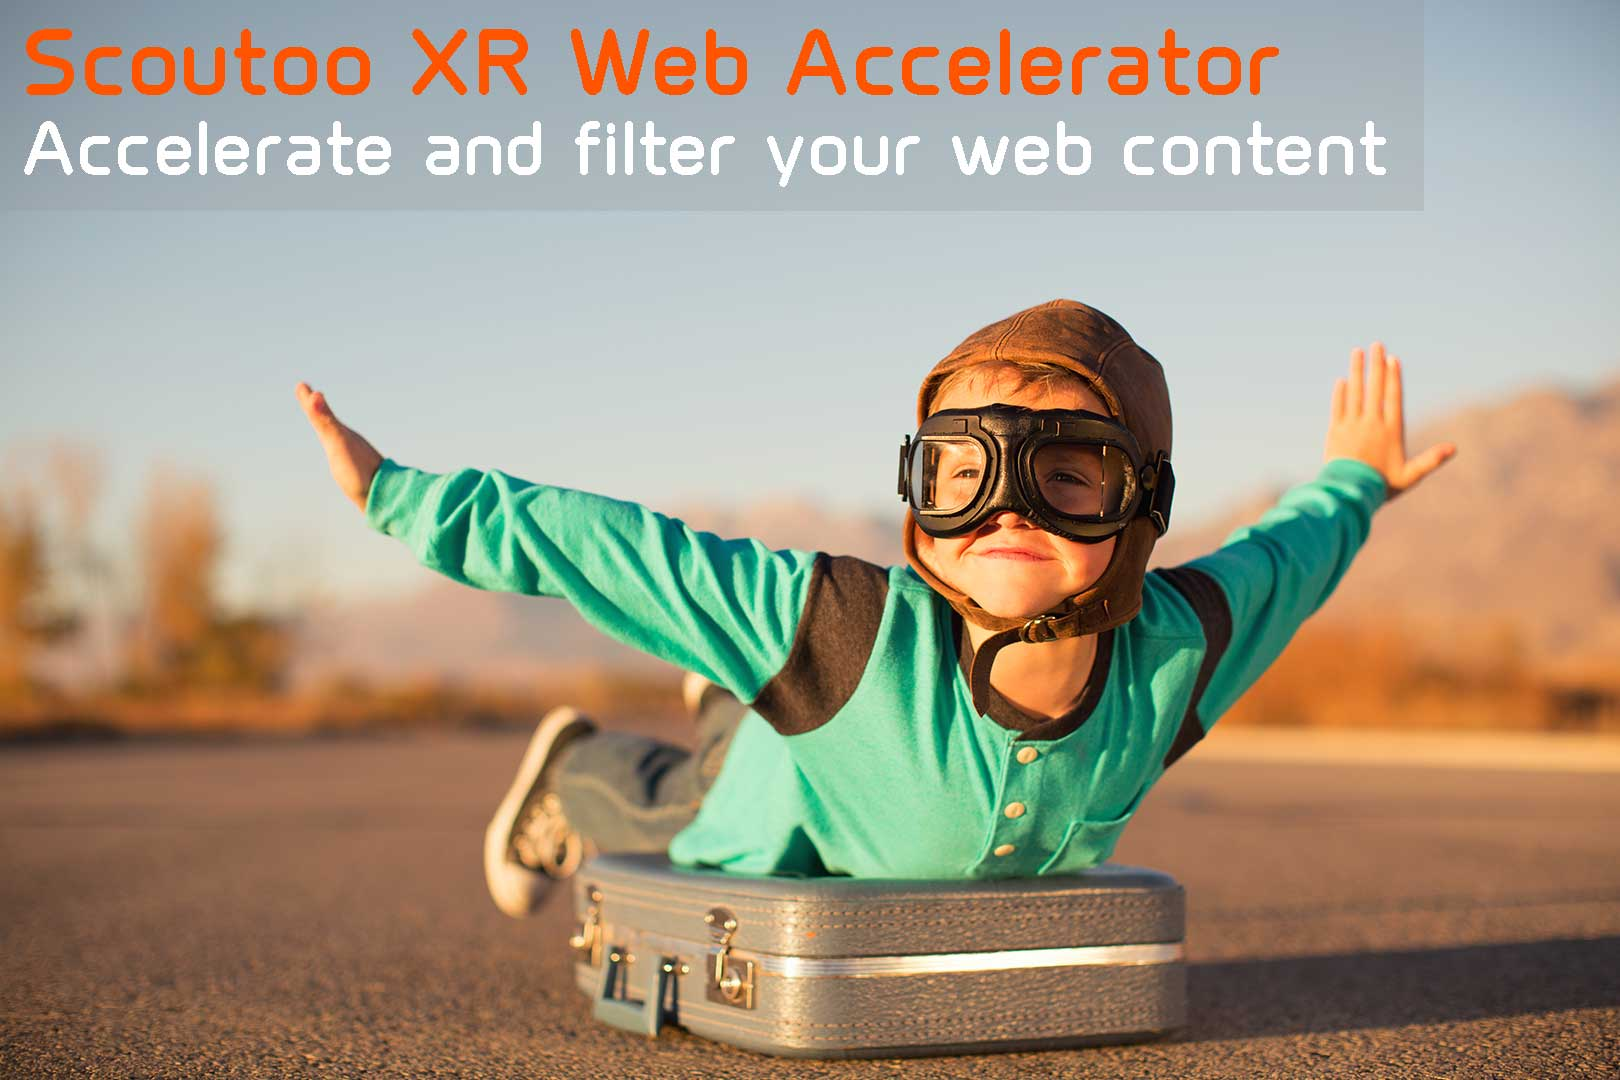 Scoutoo XR Web Accelerator